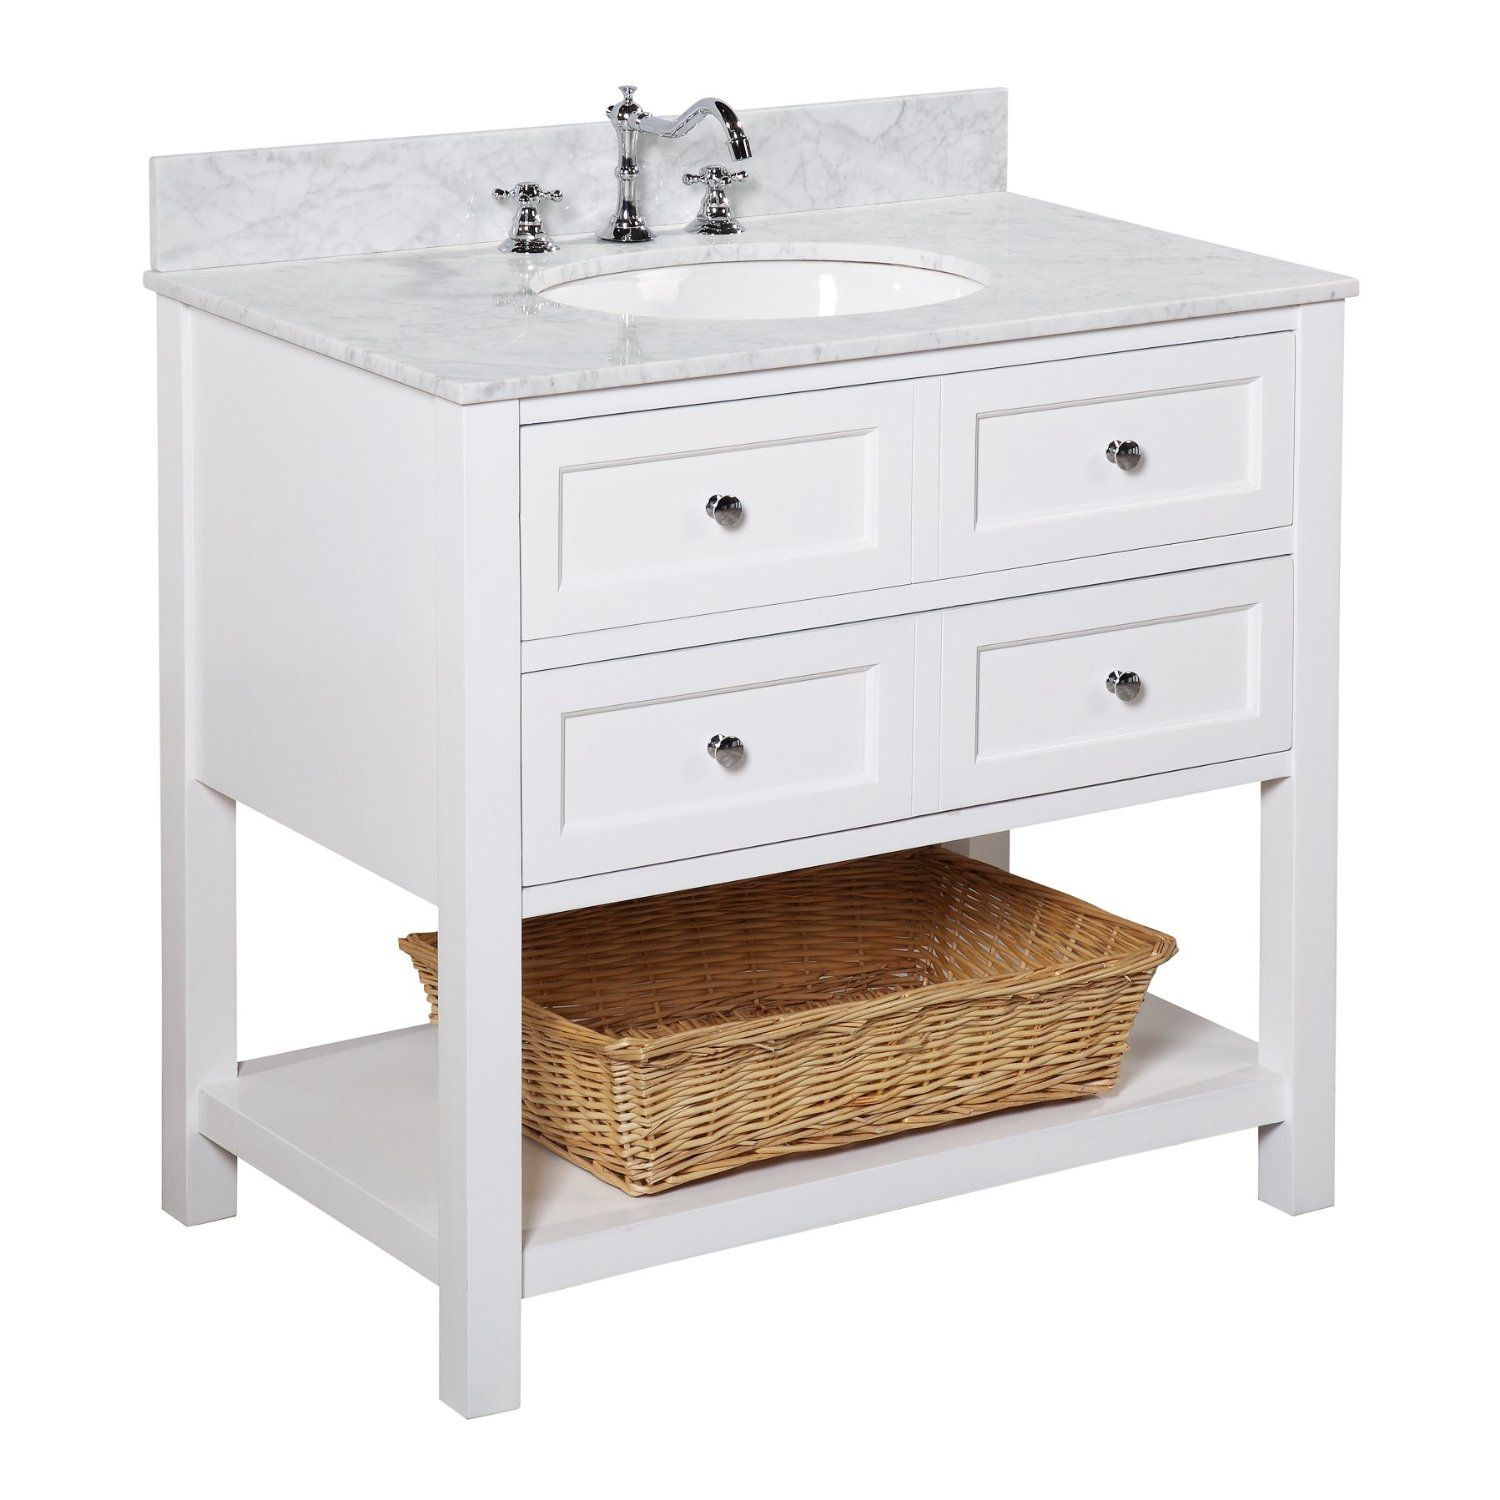 new yorker 36 inch bathroom vanity carrarawhite italian carrara marble - White Bathroom Vanity 36